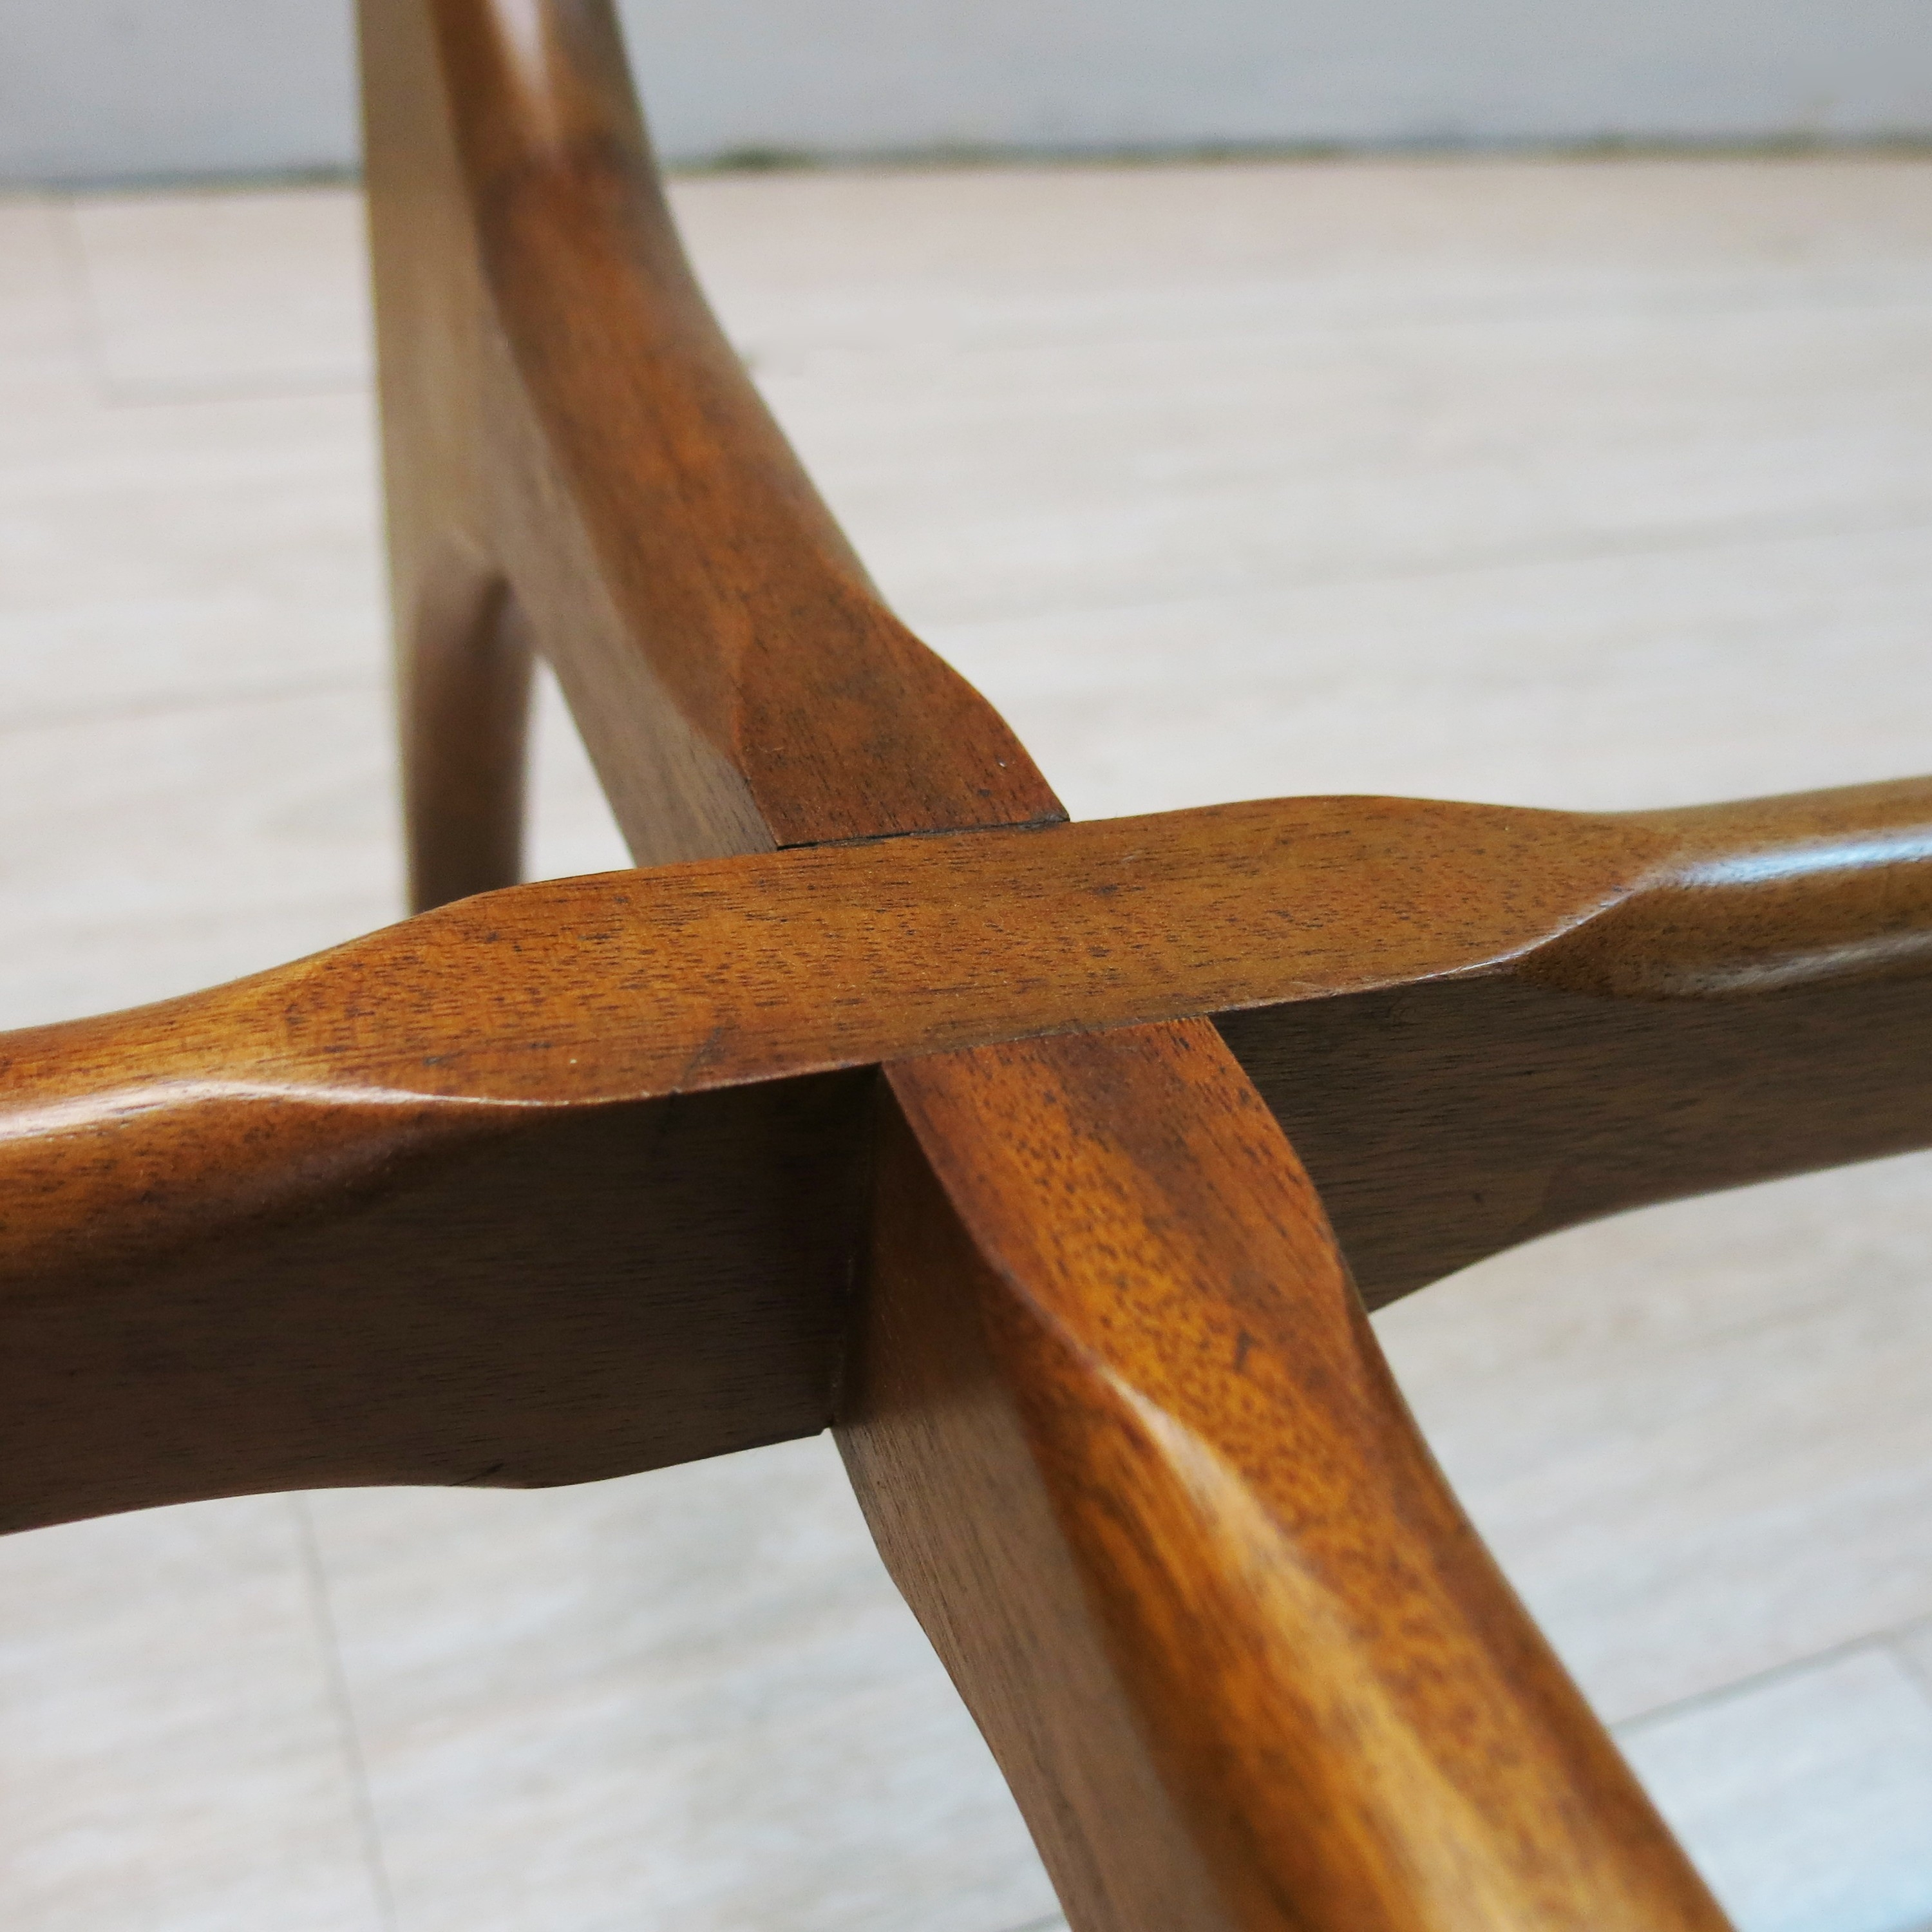 Teak Oval Coffee Table: English Stonehill Oval Coffee Table In Teak Wood And Glass